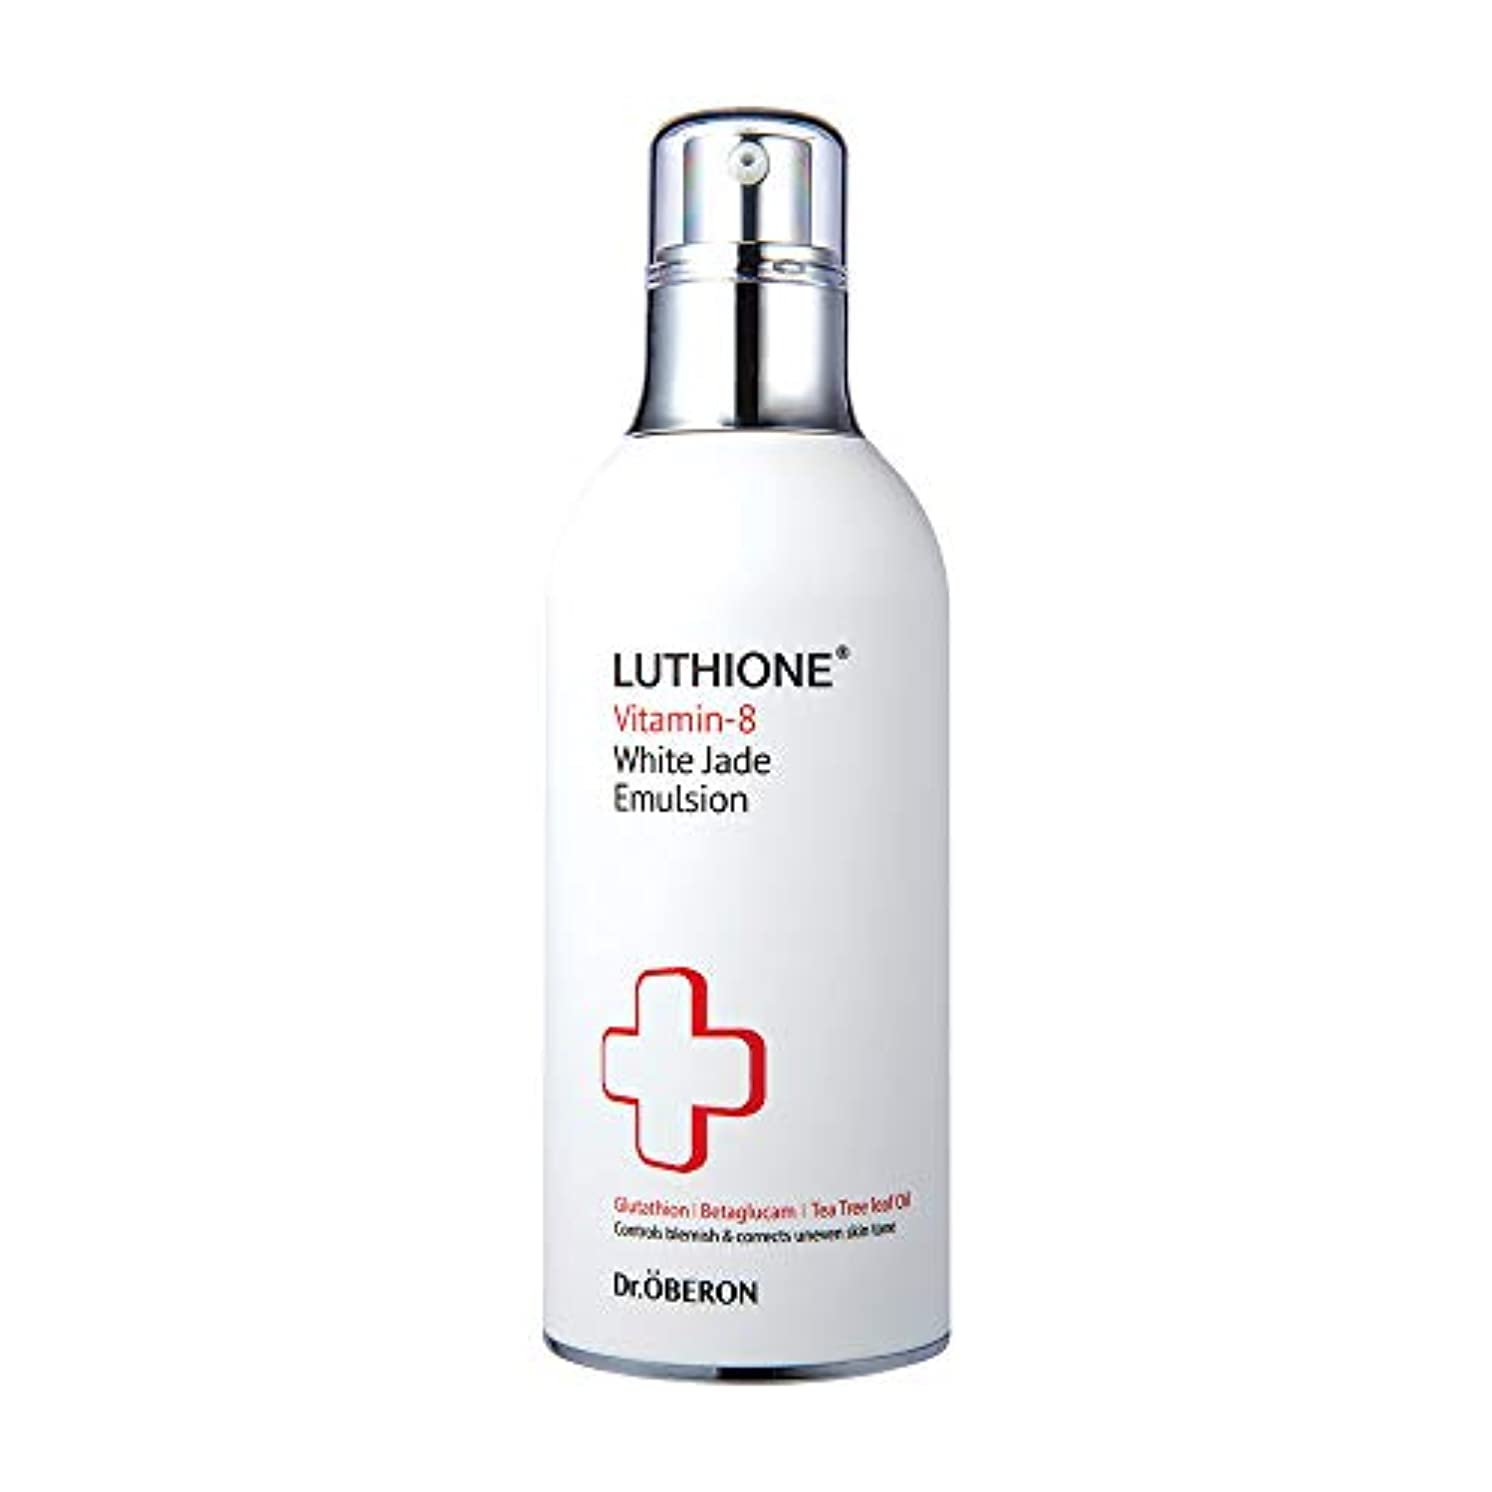 受粉者不機嫌そうな家主[Luthione] ルチオン ビタミン-8 白玉 エマルジョン 3.5 oz Vitamin-8 White Jade Emulsion 3.5 oz - Hydrating Moisturizer Lightening Boost Skin Toner with 8 Vitamins and Glutathione Korean Skin Care